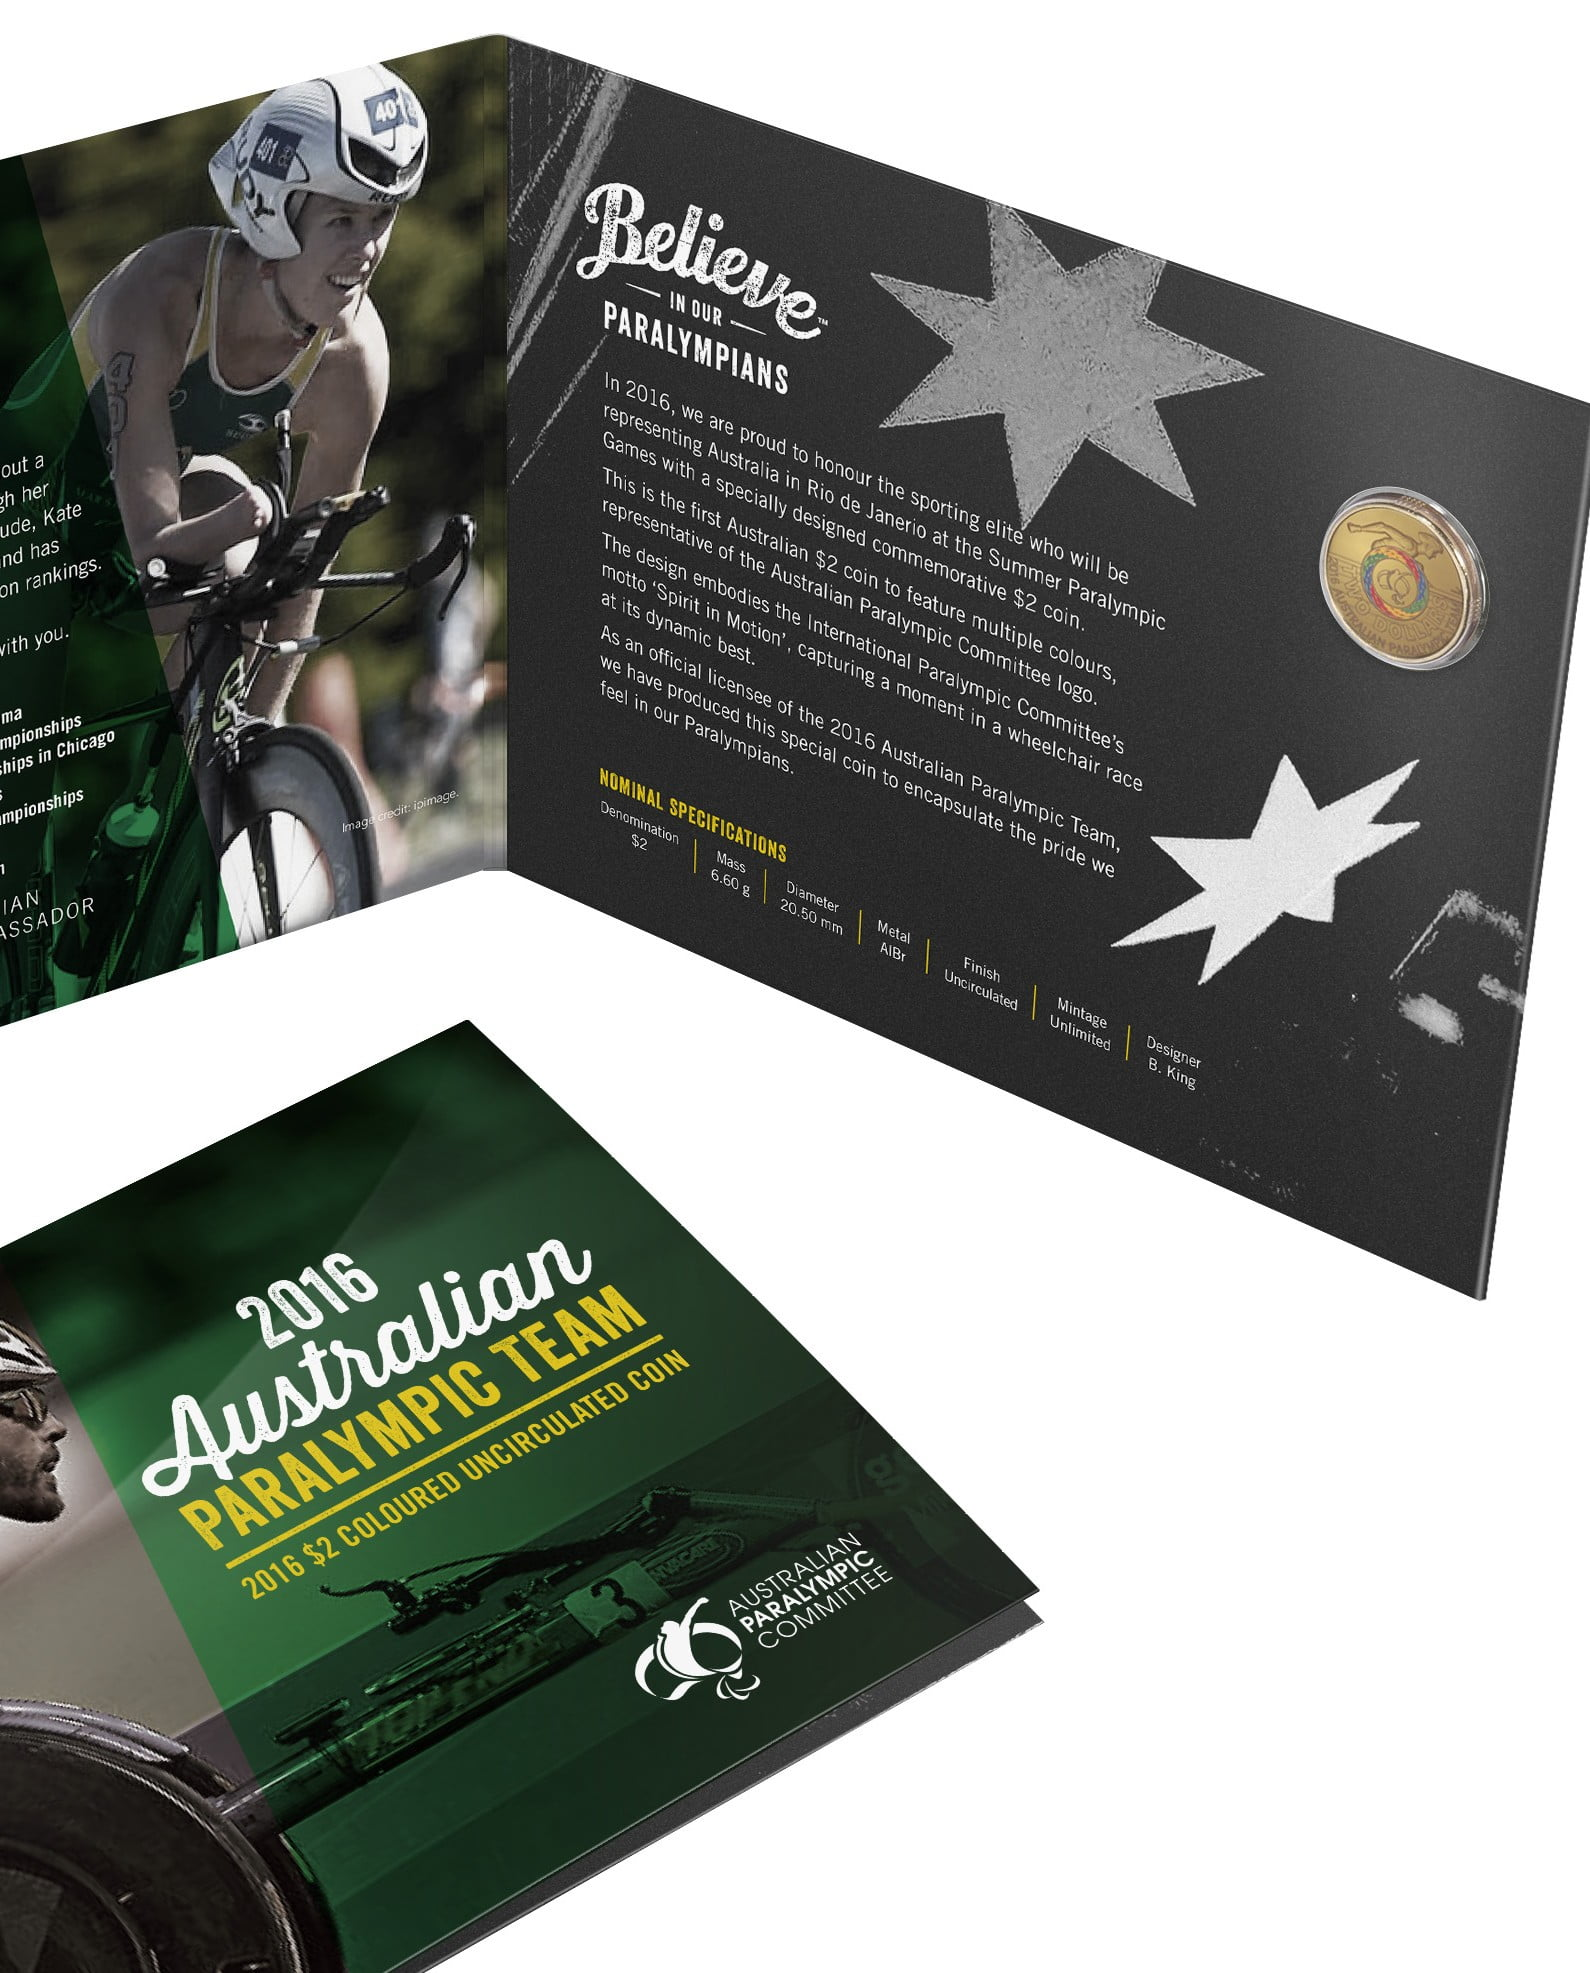 Woolworths shoppers win gold with exclusive Paralympic coin launch